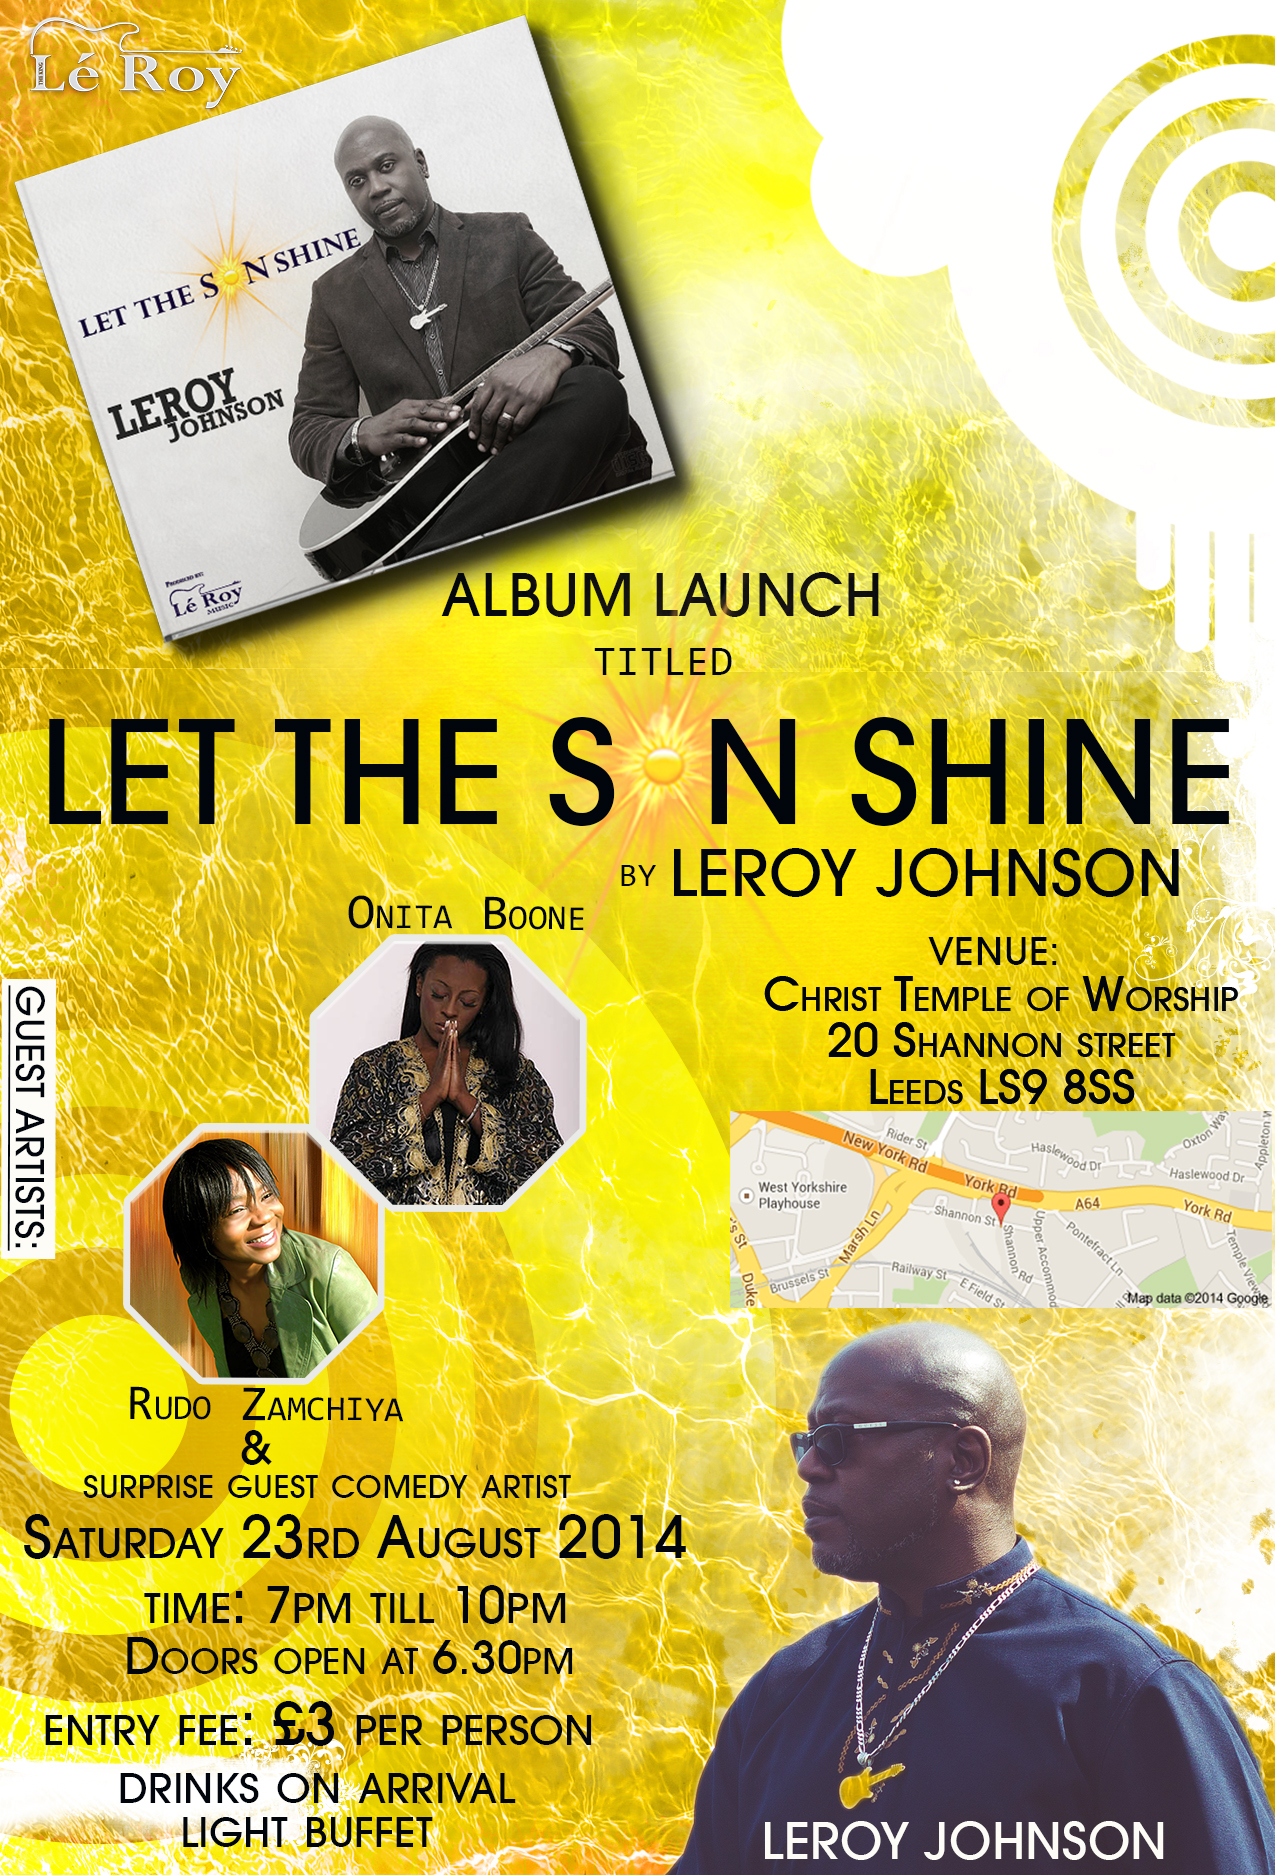 LET THE SUNSHINE ALBUM LAUNCH